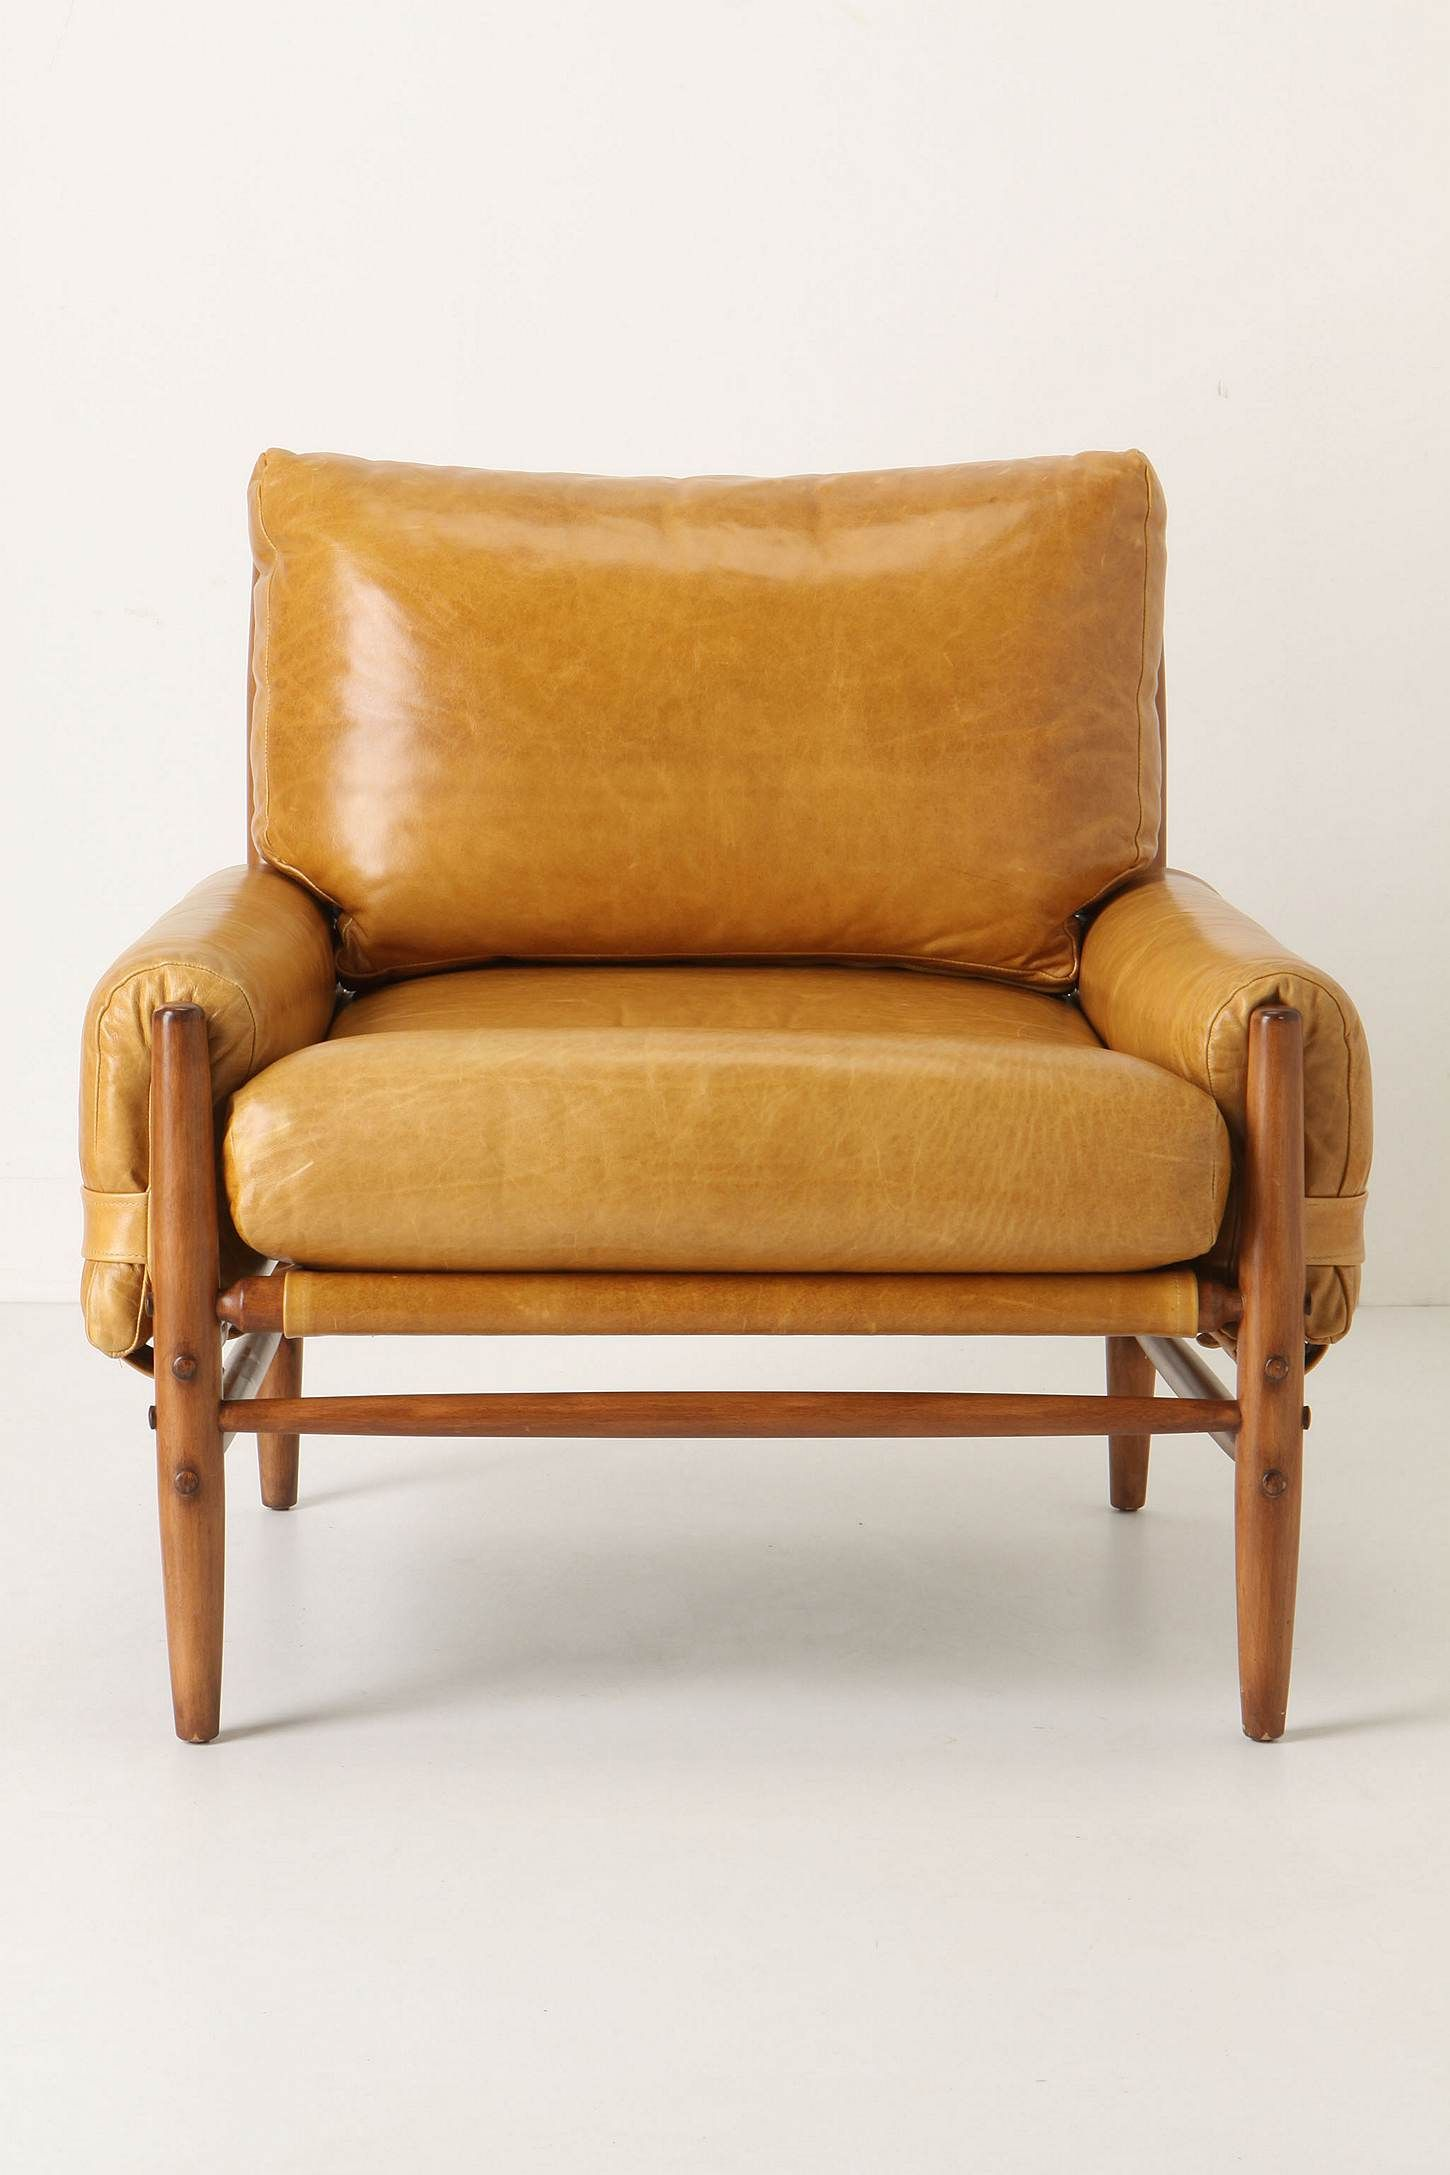 Dreaming Of This Chair For My Living Room Looking For Something